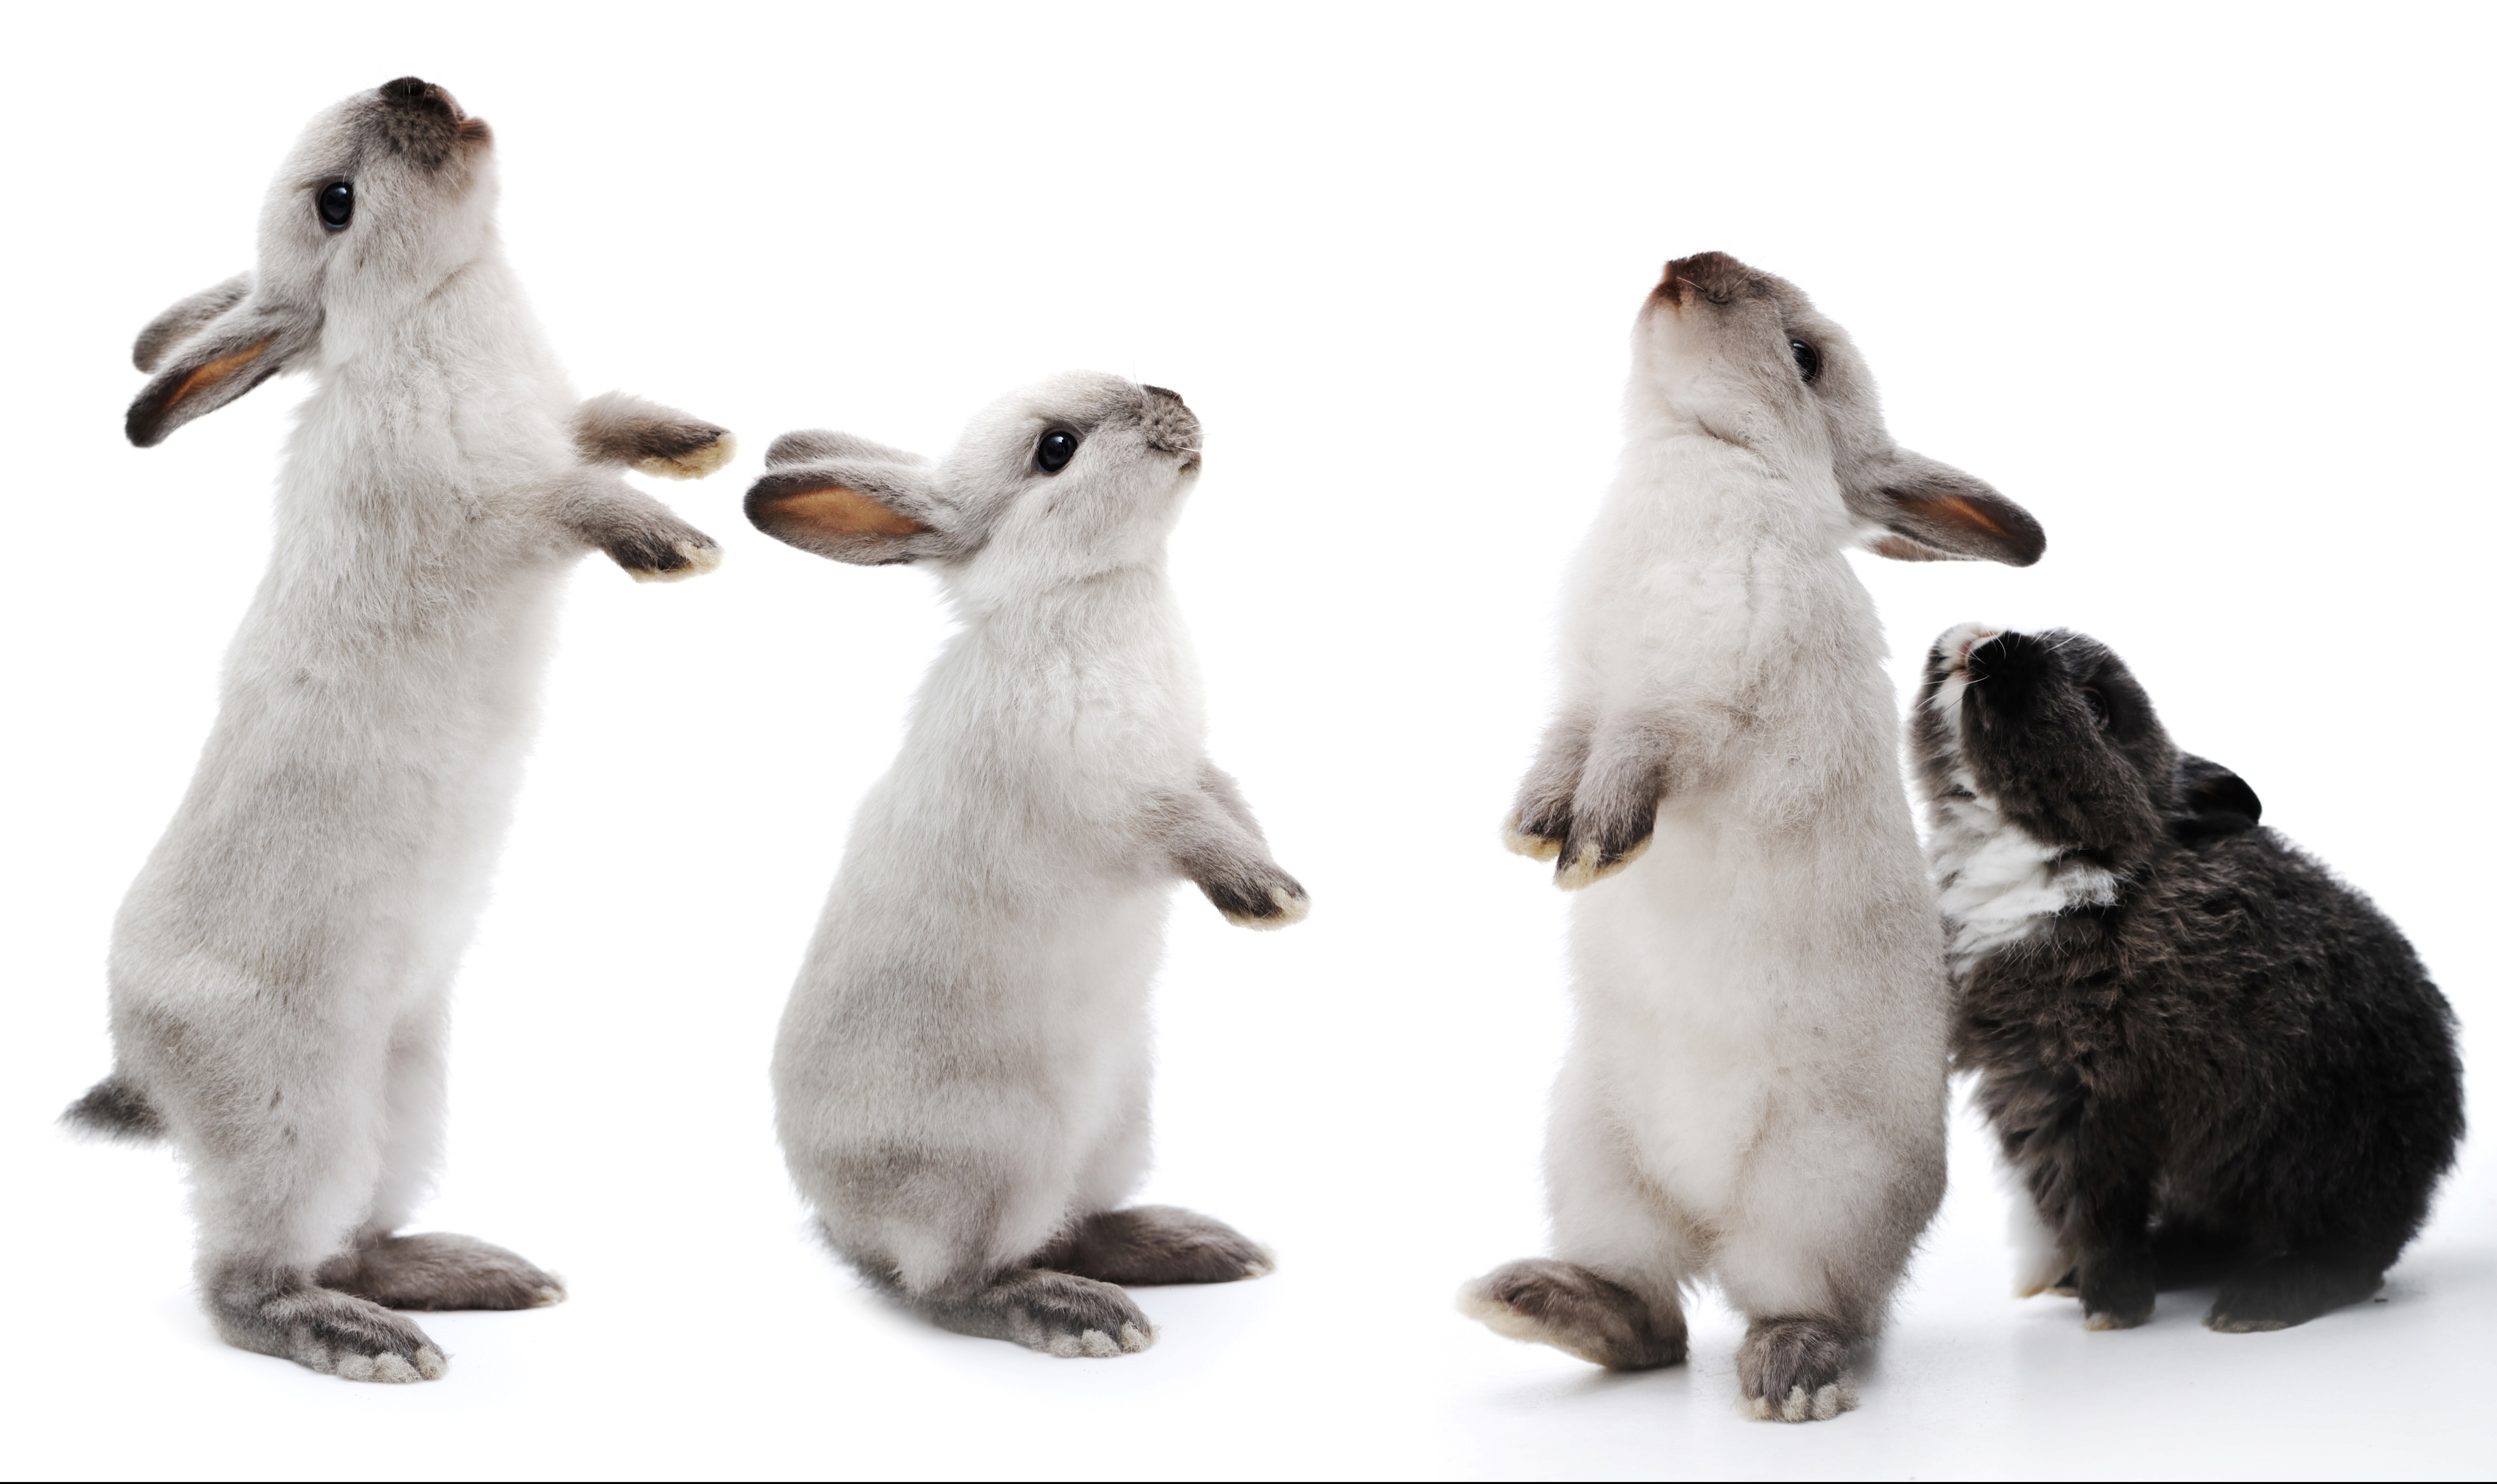 Group of rabbits bunny isolated on white background with copy sp